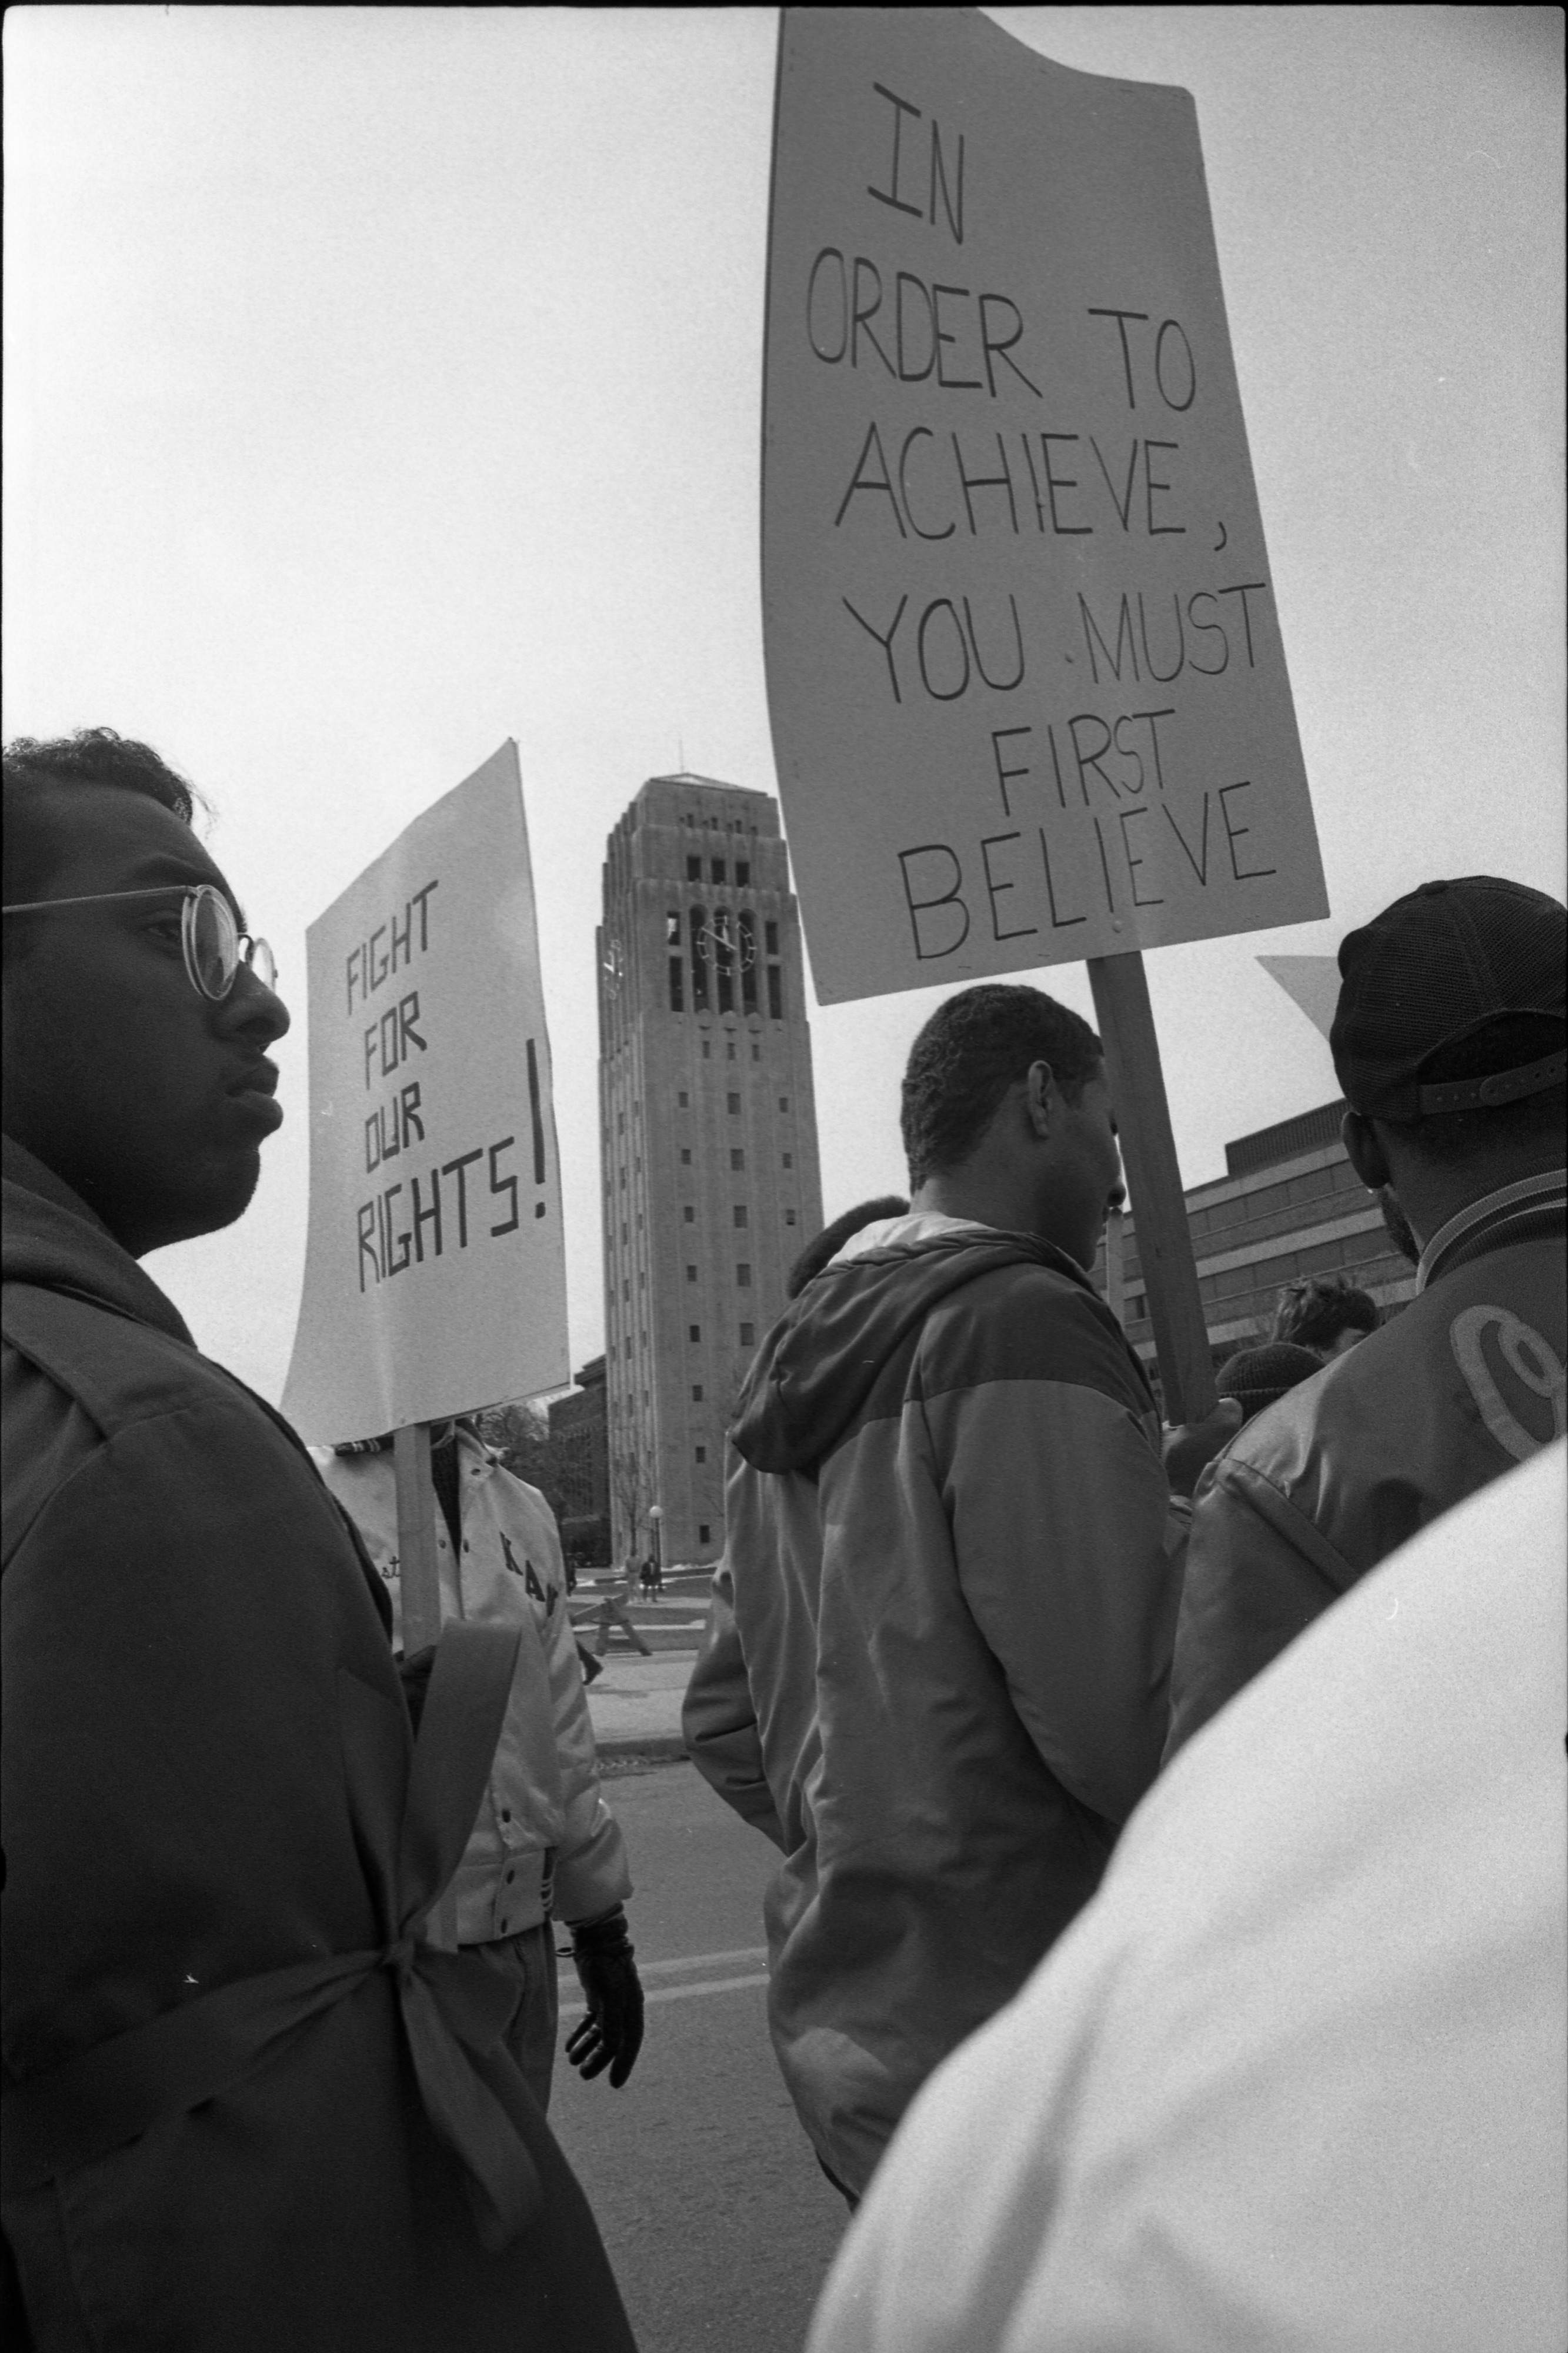 Black Action Movement III Protesters March With Signs, March 18, 1987 image